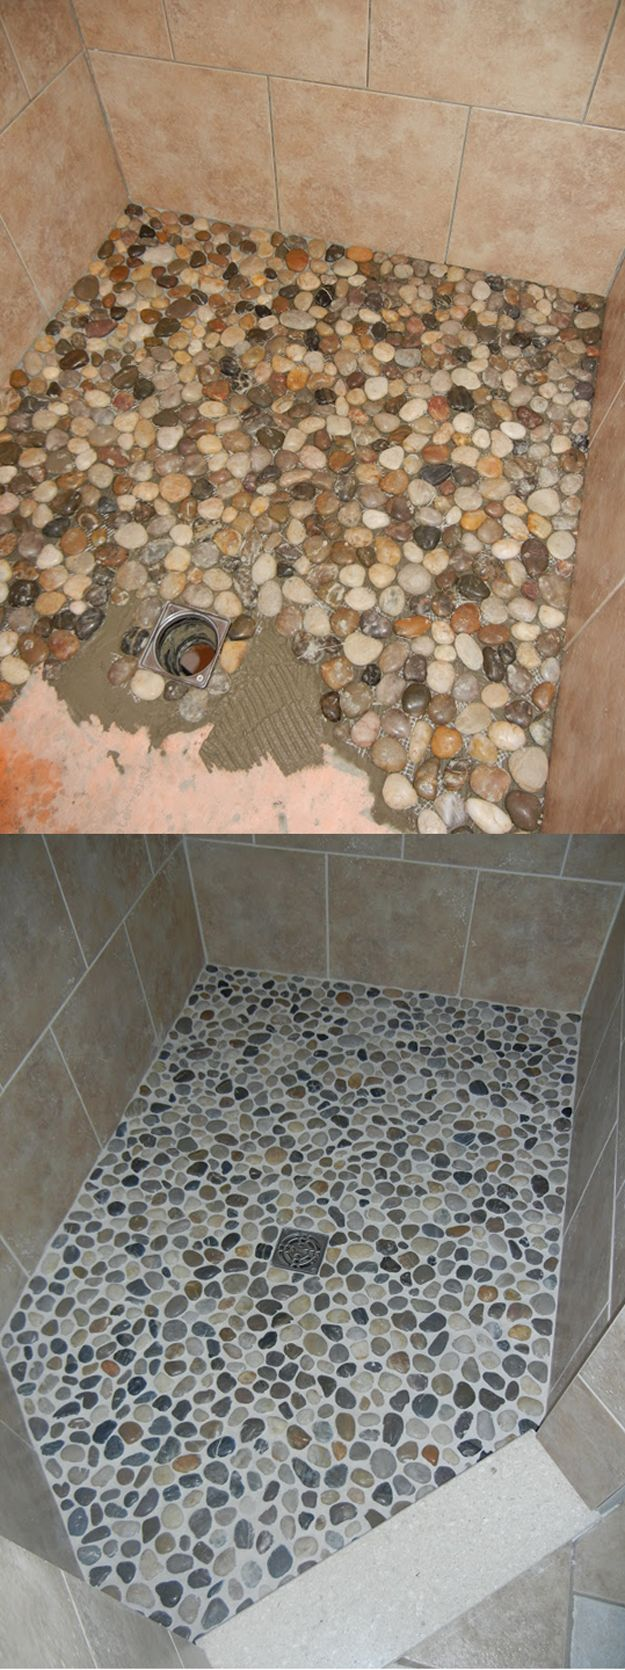 Best Diy Shower Ideas On Pinterest Stone Bathroom Tiles Diy - Diy bathroom shower flooring ideas